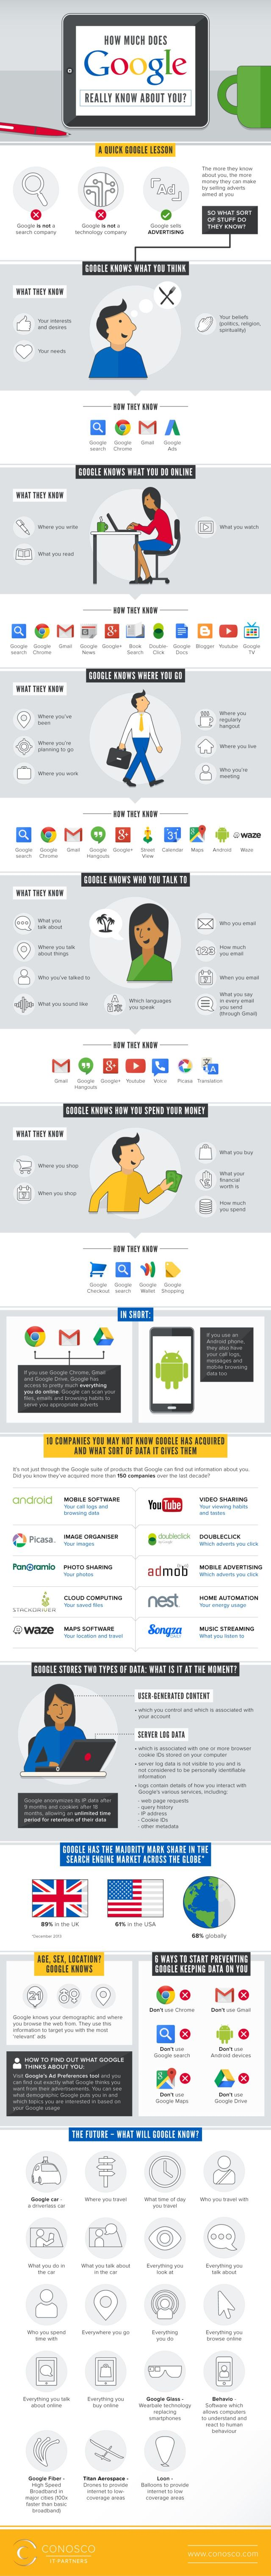 How Much Does Google Really Know About You? #infographic